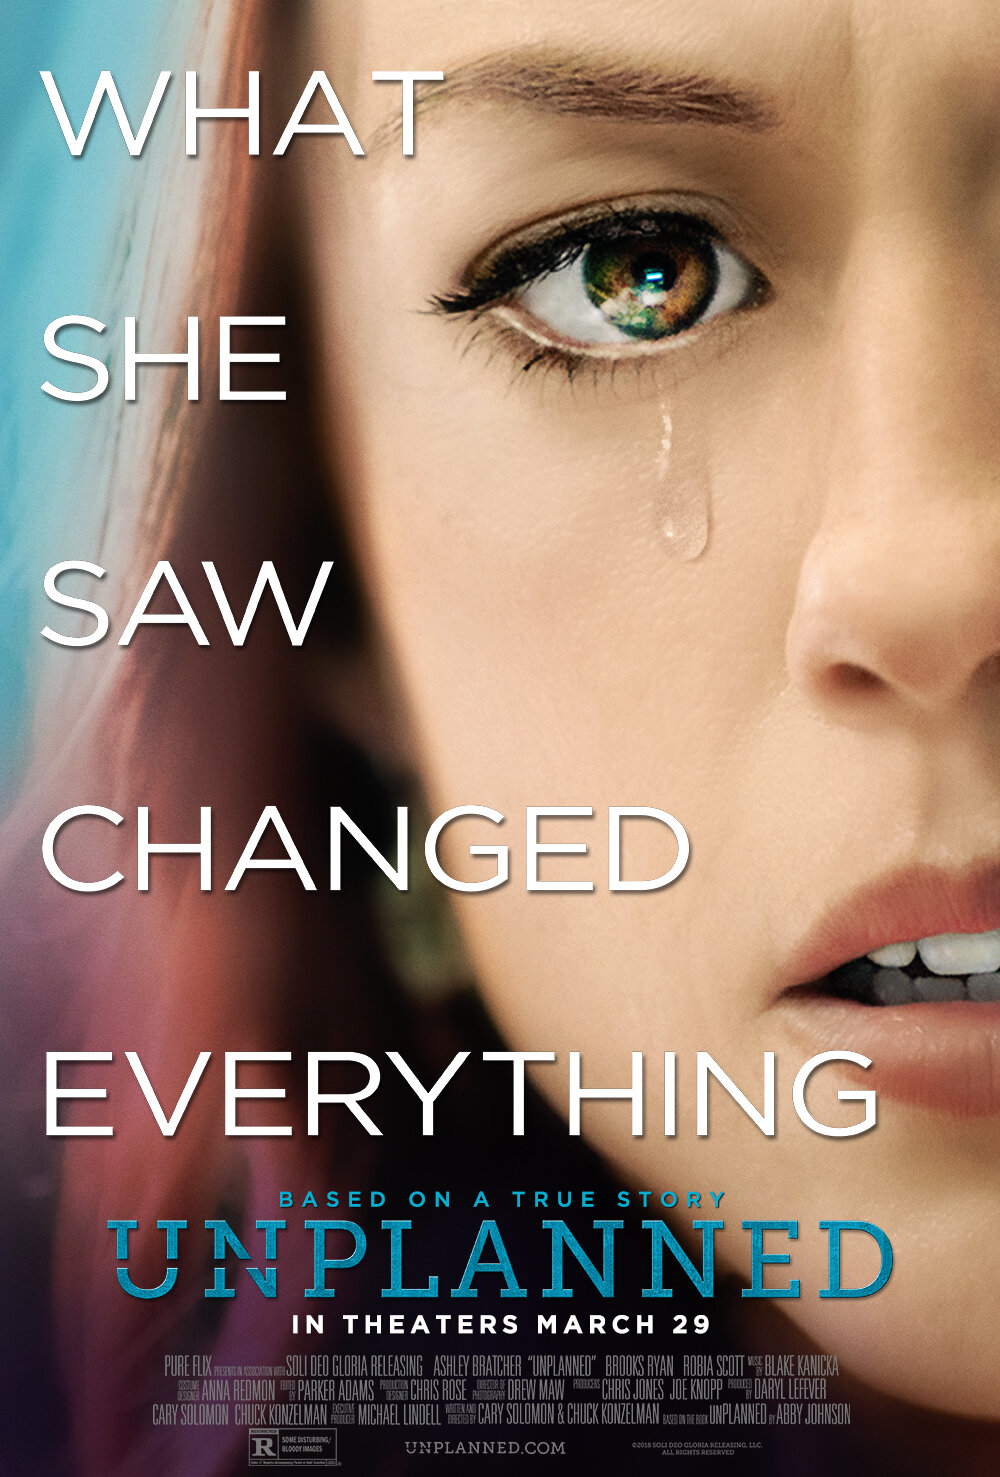 Unplanned (2019) - Directed By: Chuck Konzelman, Cary SolomonStarring: Ashley Bratcher, Brooks RyanRated: RRun Time: 1h 49mTMM Score: 2Strengths: ActingWeakness: Directing